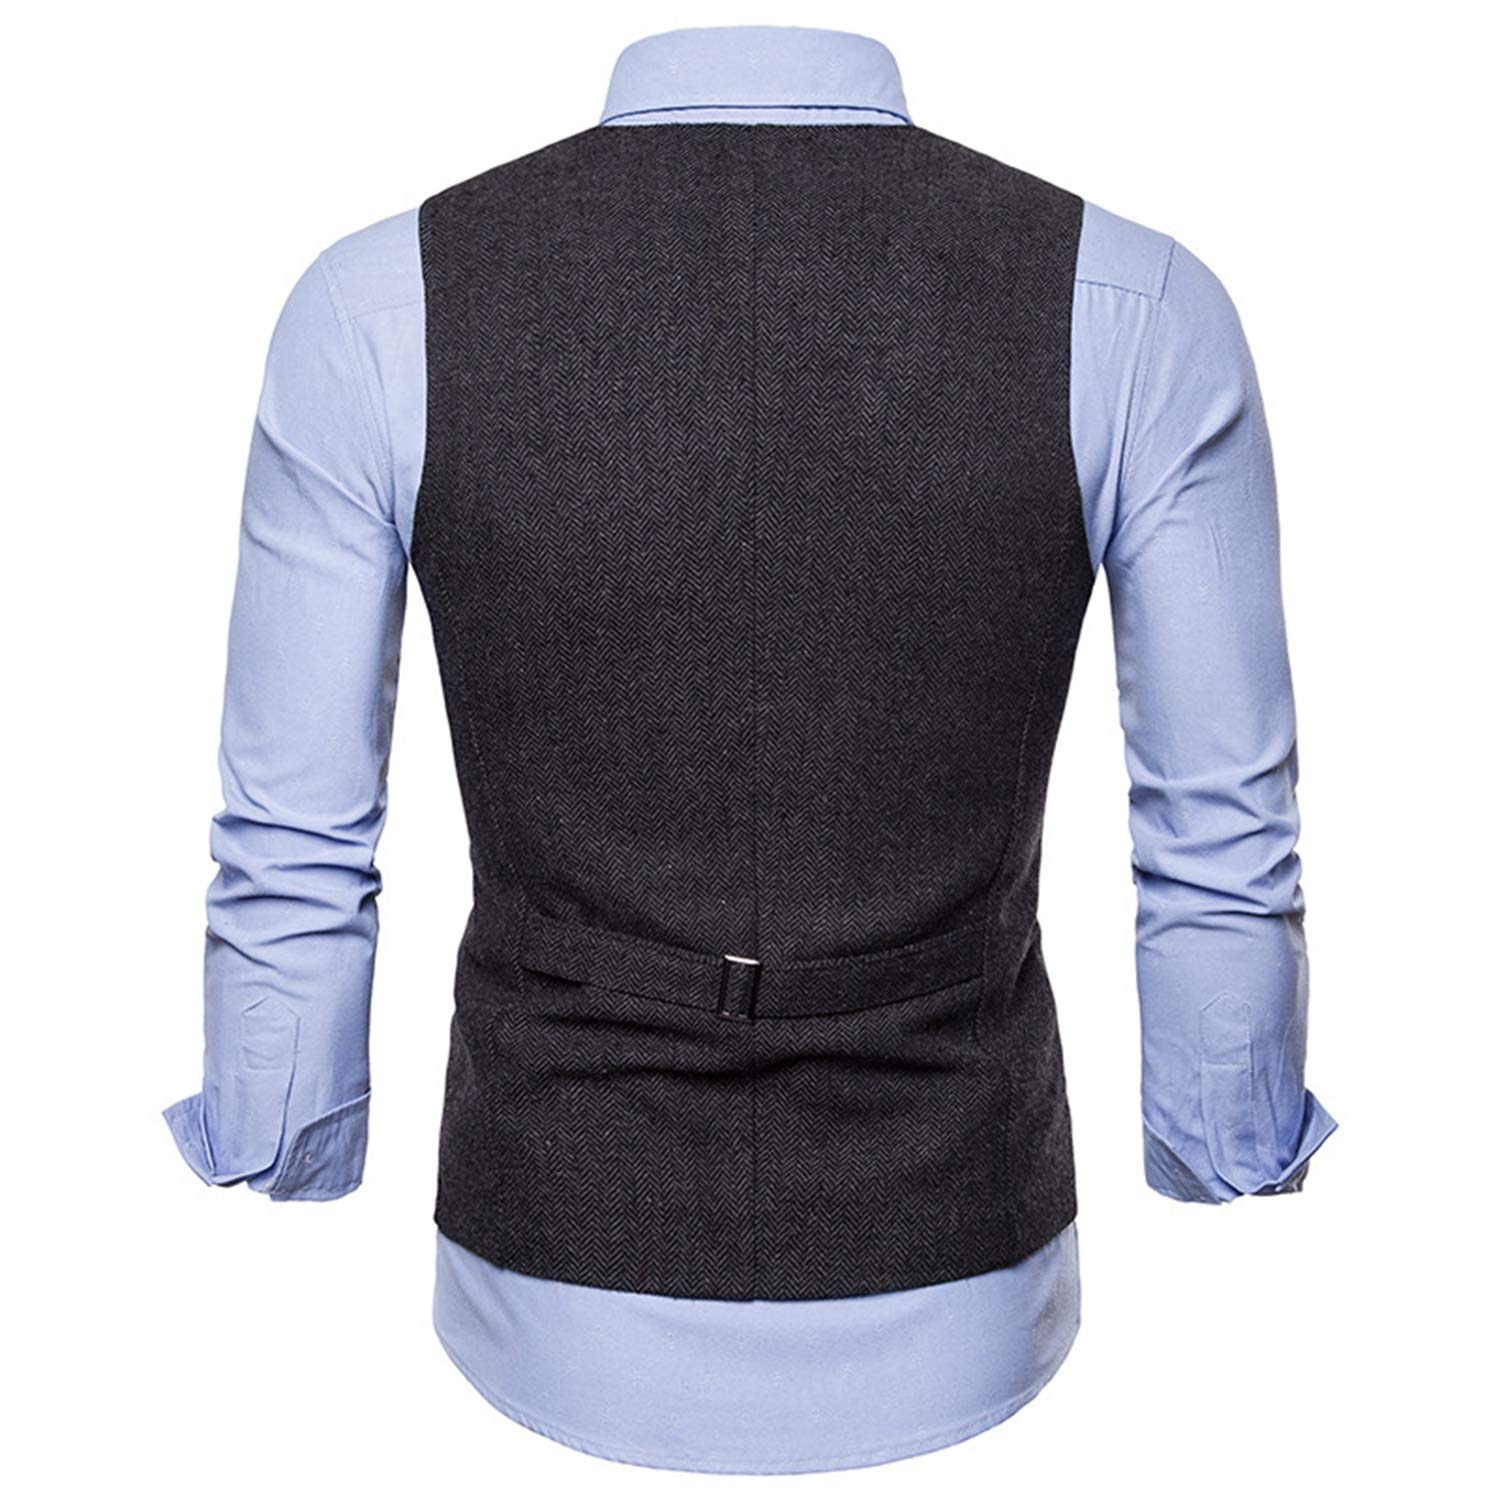 Carolyn Jones Mens Single Breasted Suit Vest Male Formal ...